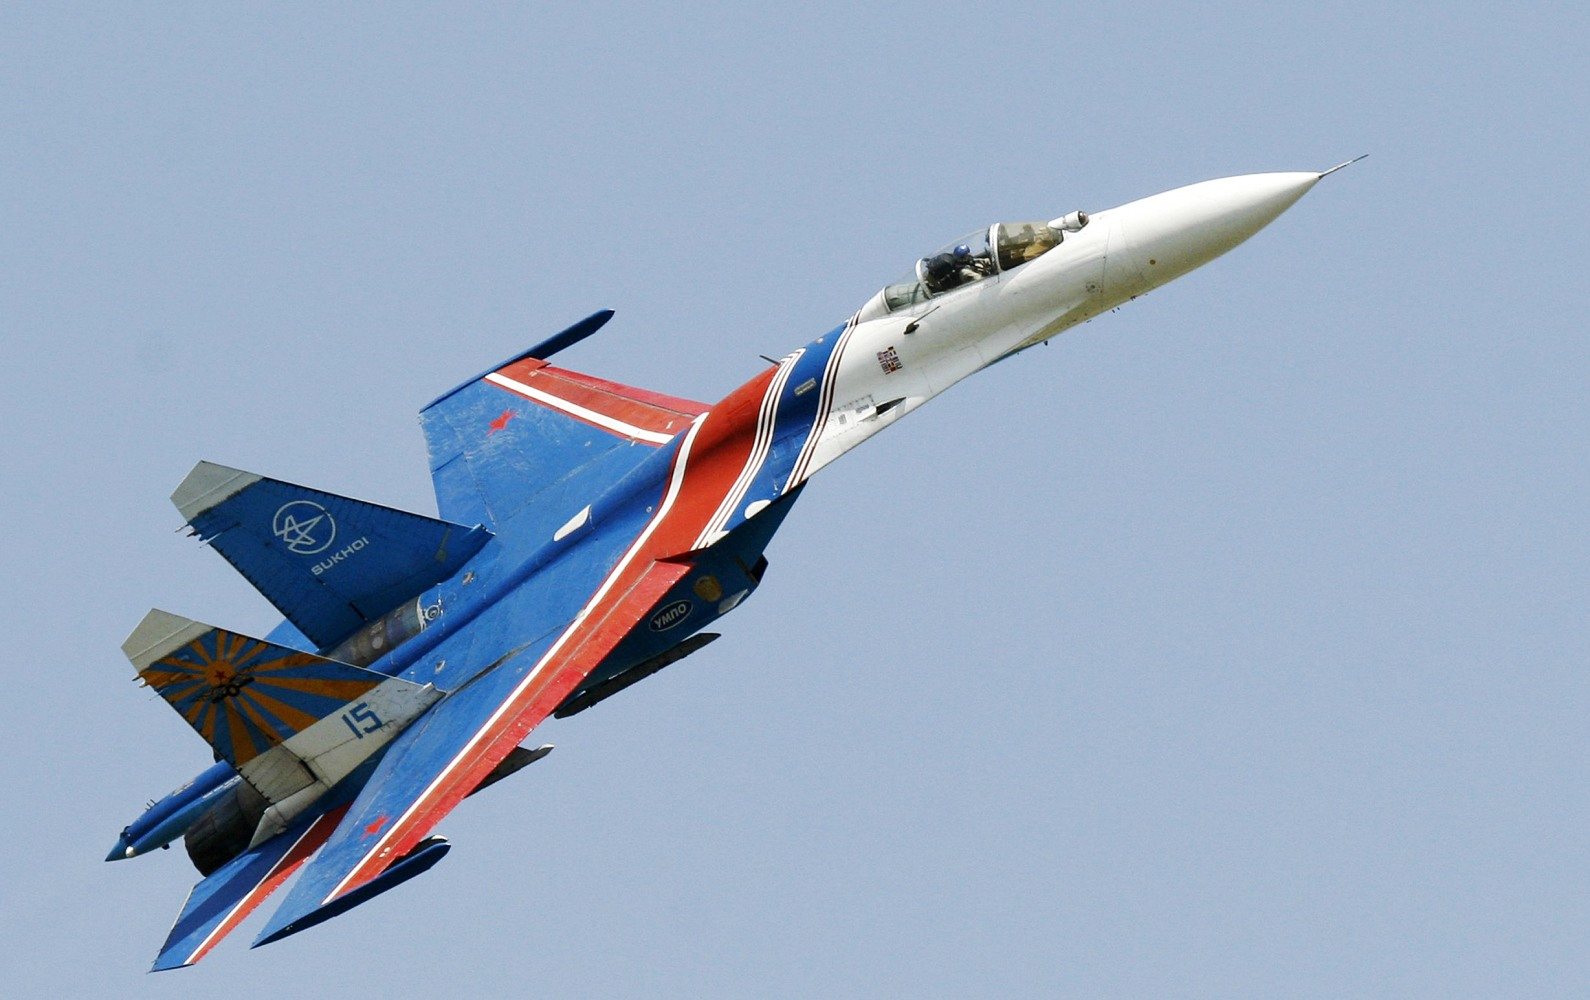 Navy Patrol Plane Has Close Encounter With Russian Fighter